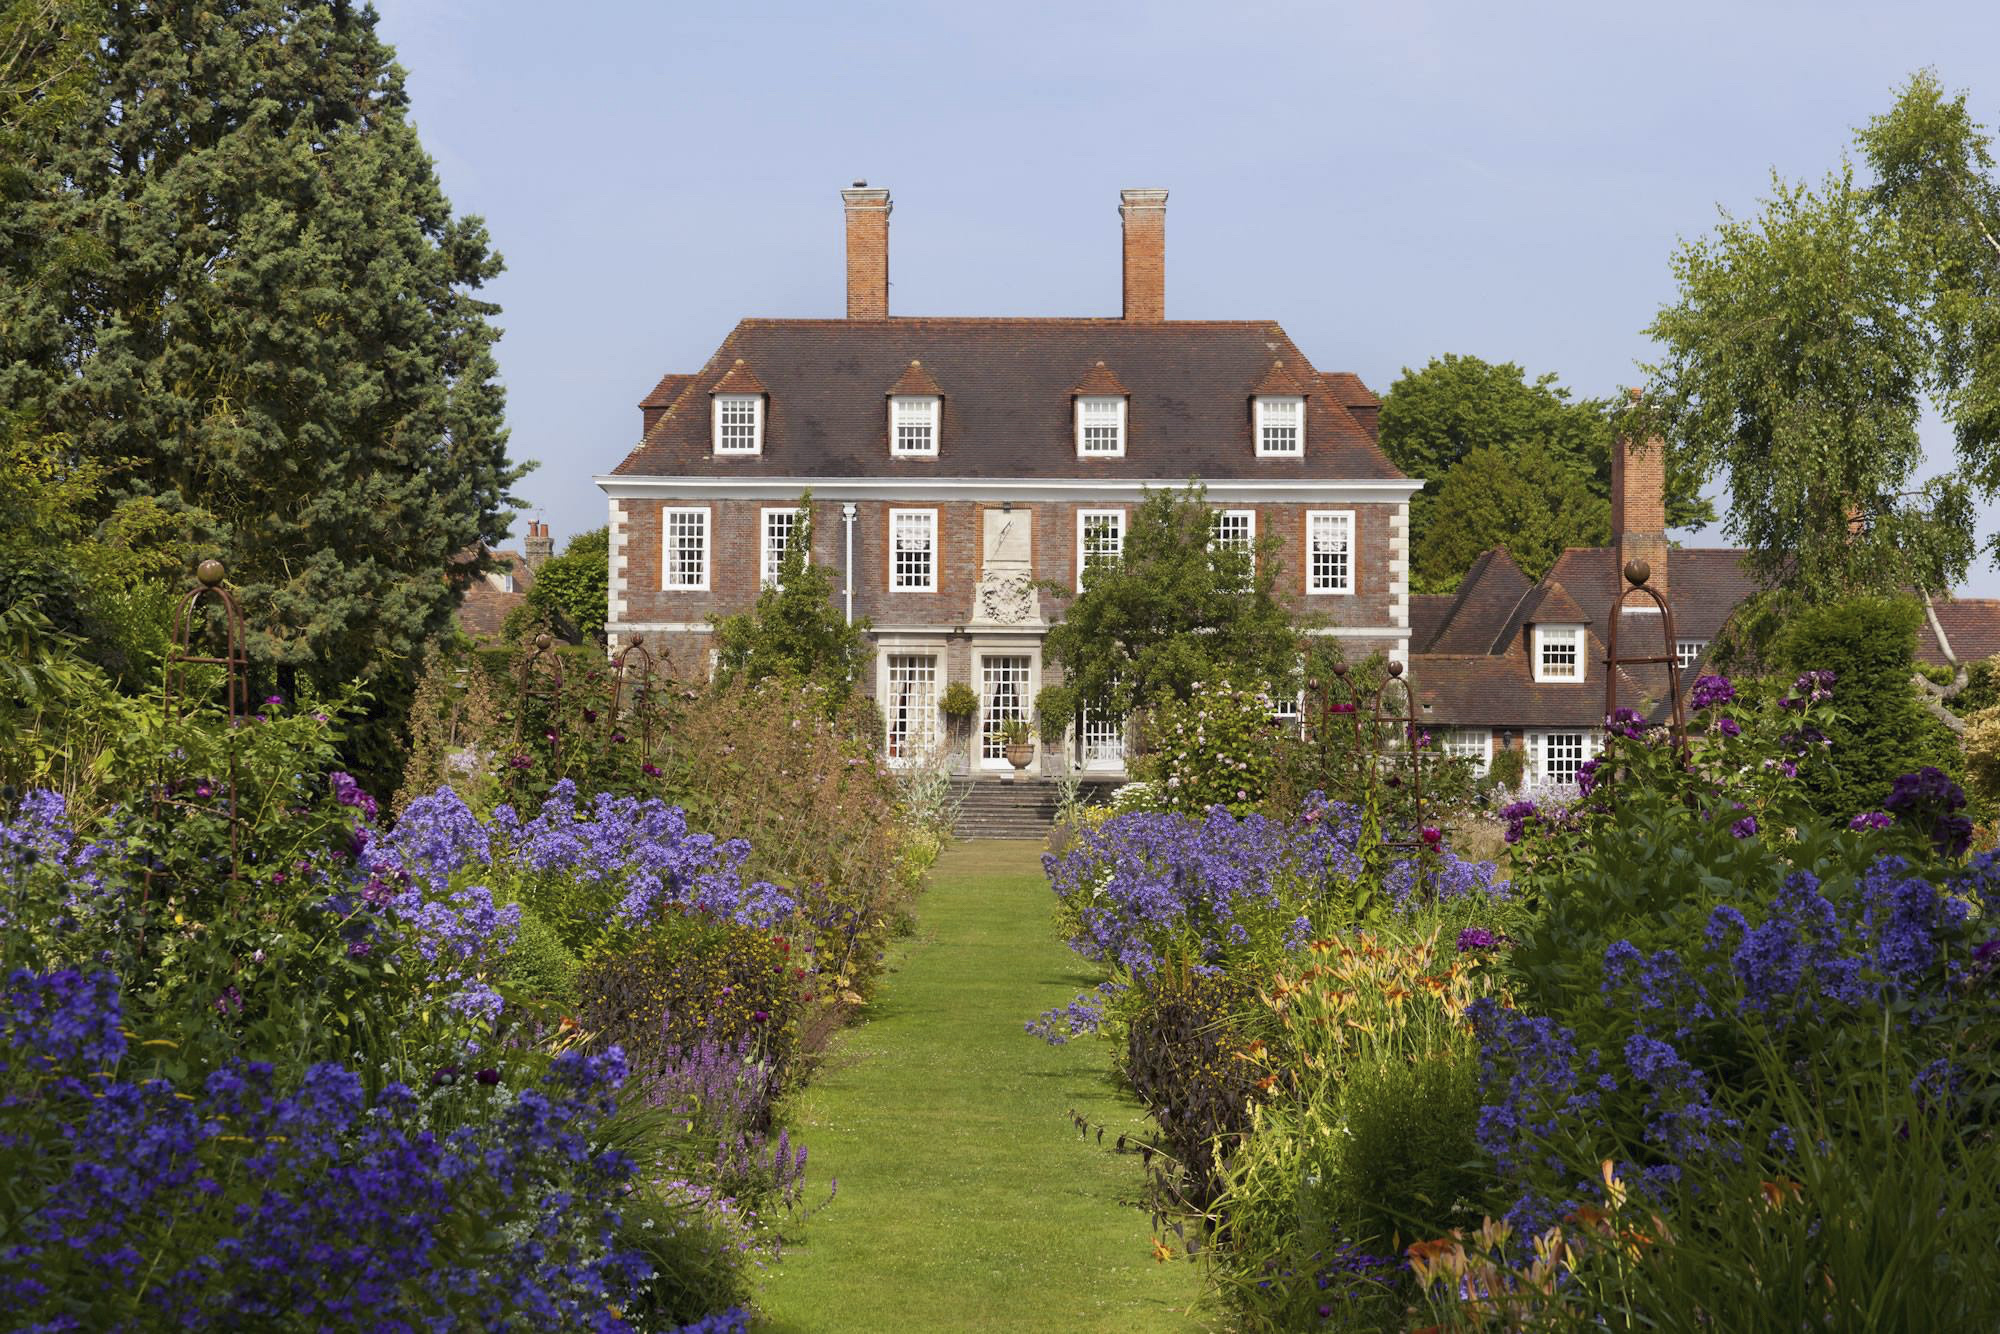 Gardens at The Salutation in Sandwich, Kent